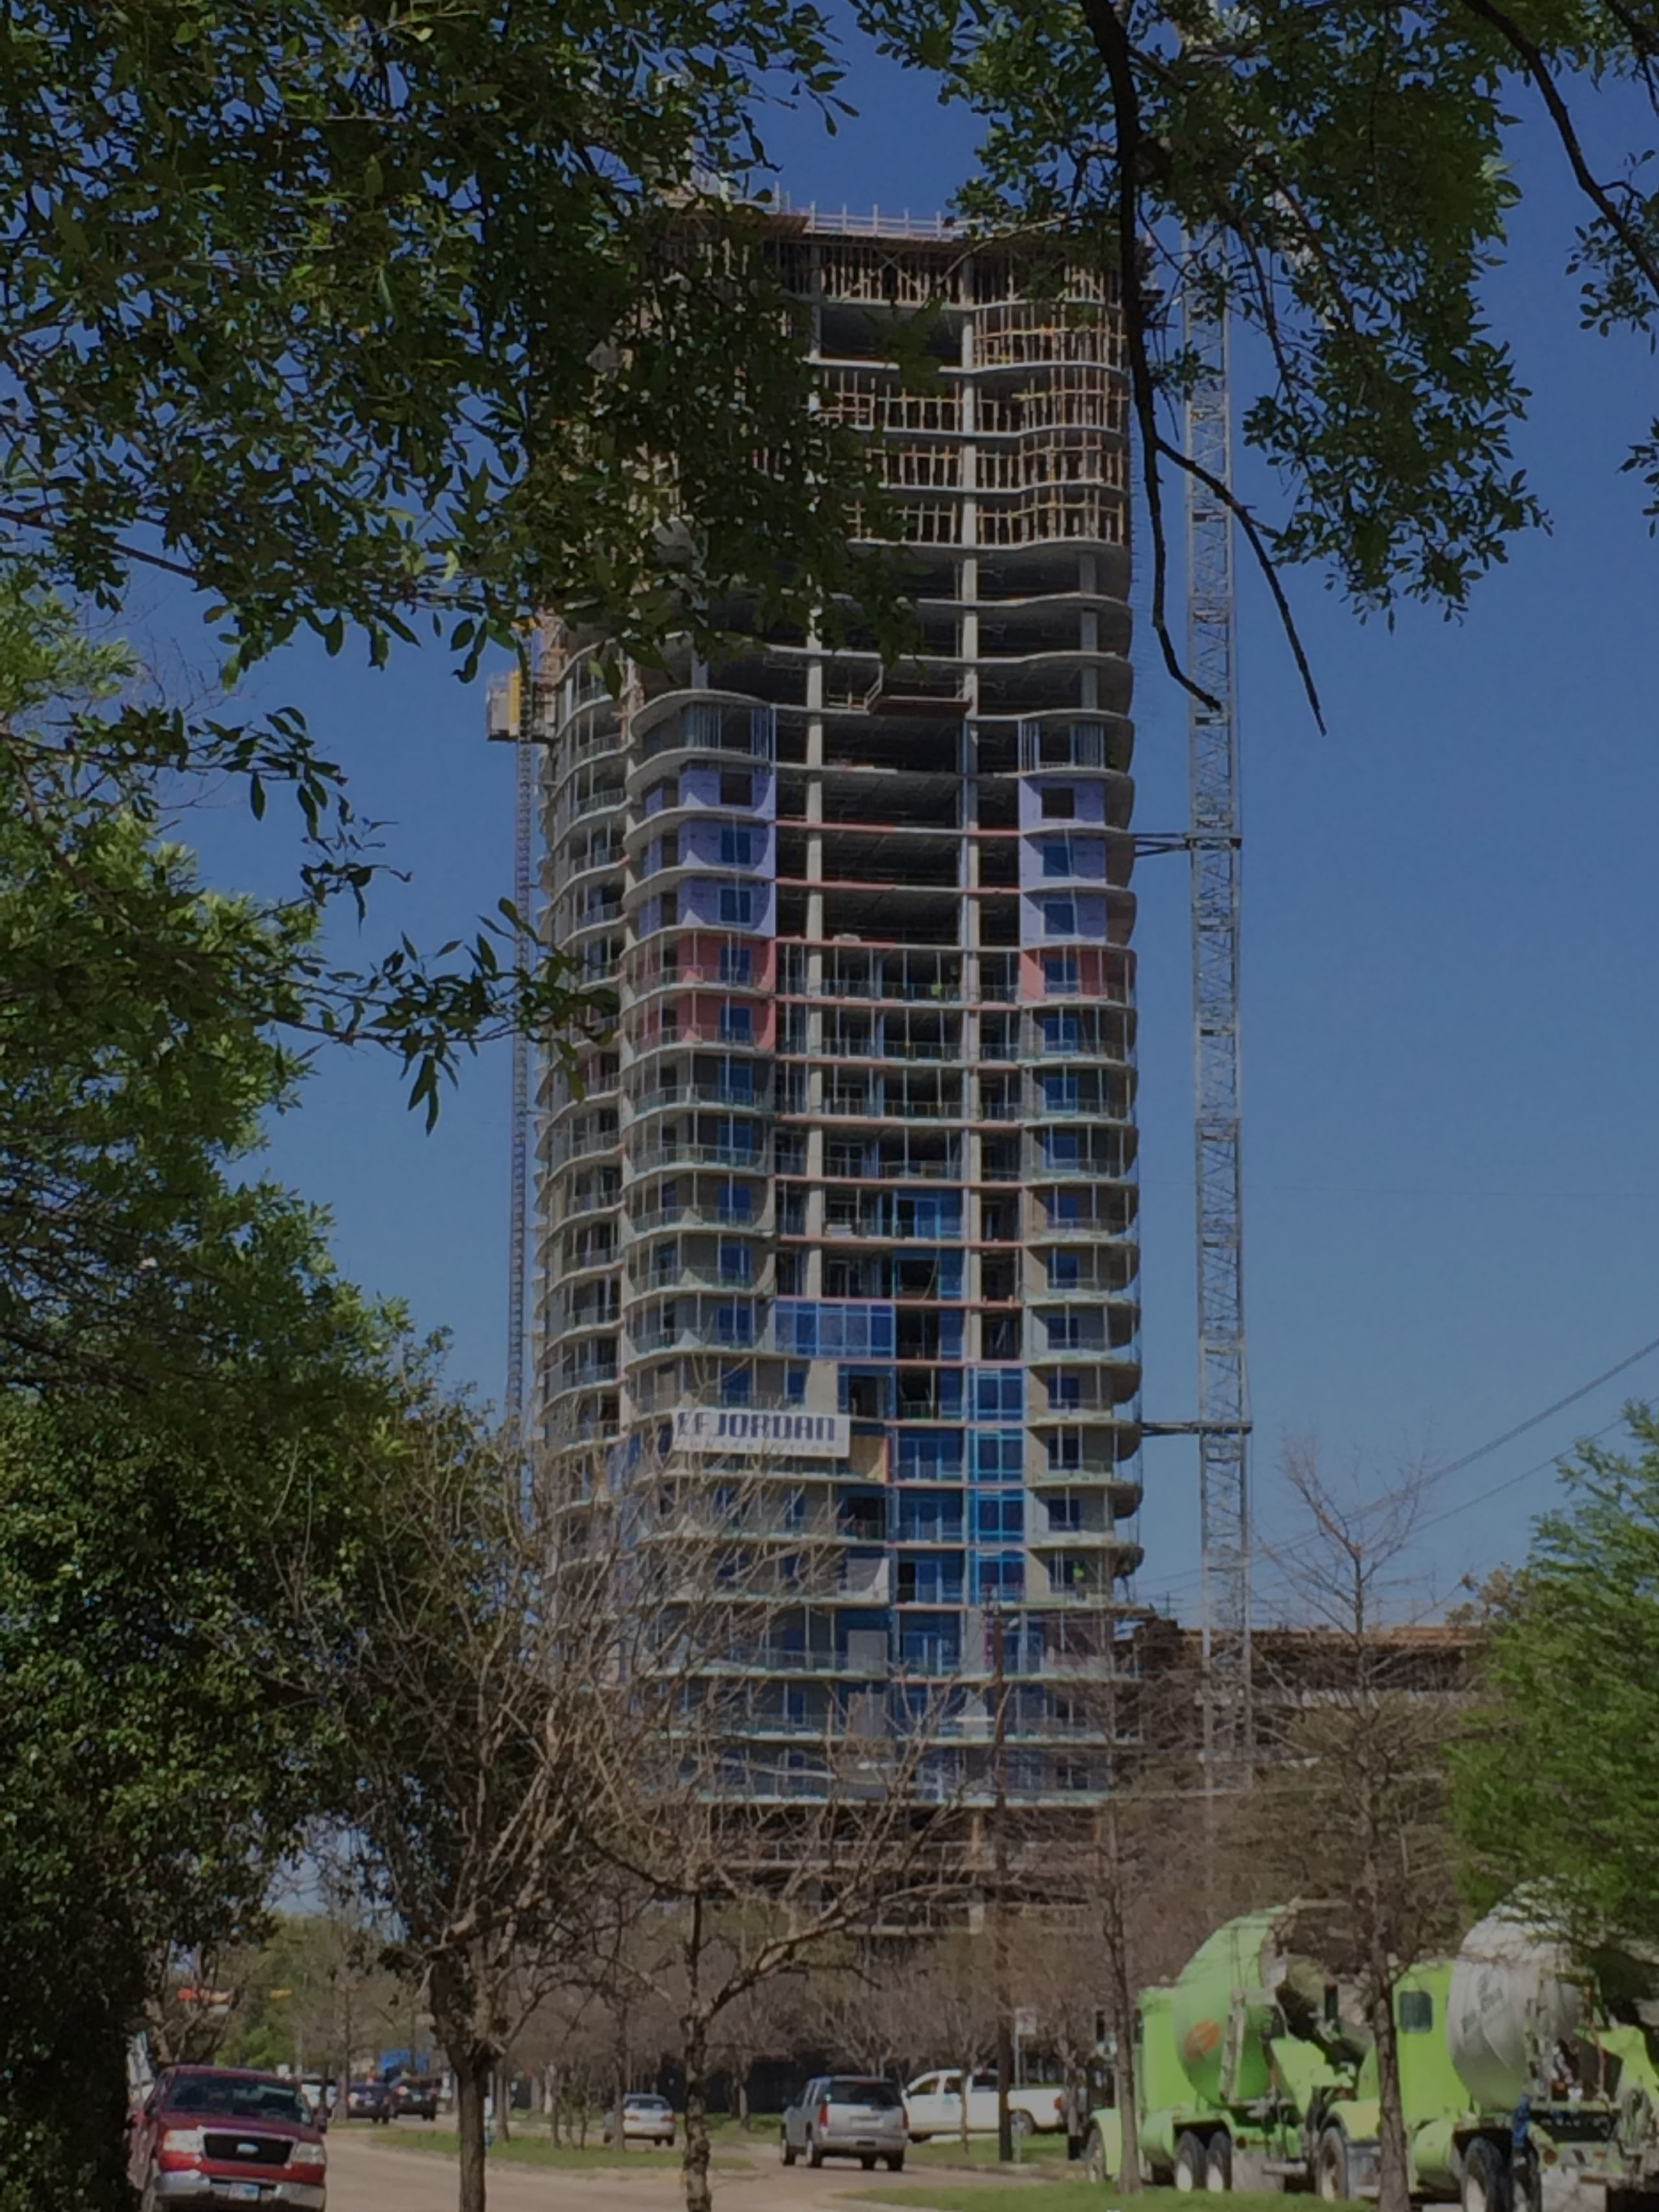 Newest High Rises Going Up in Dallas